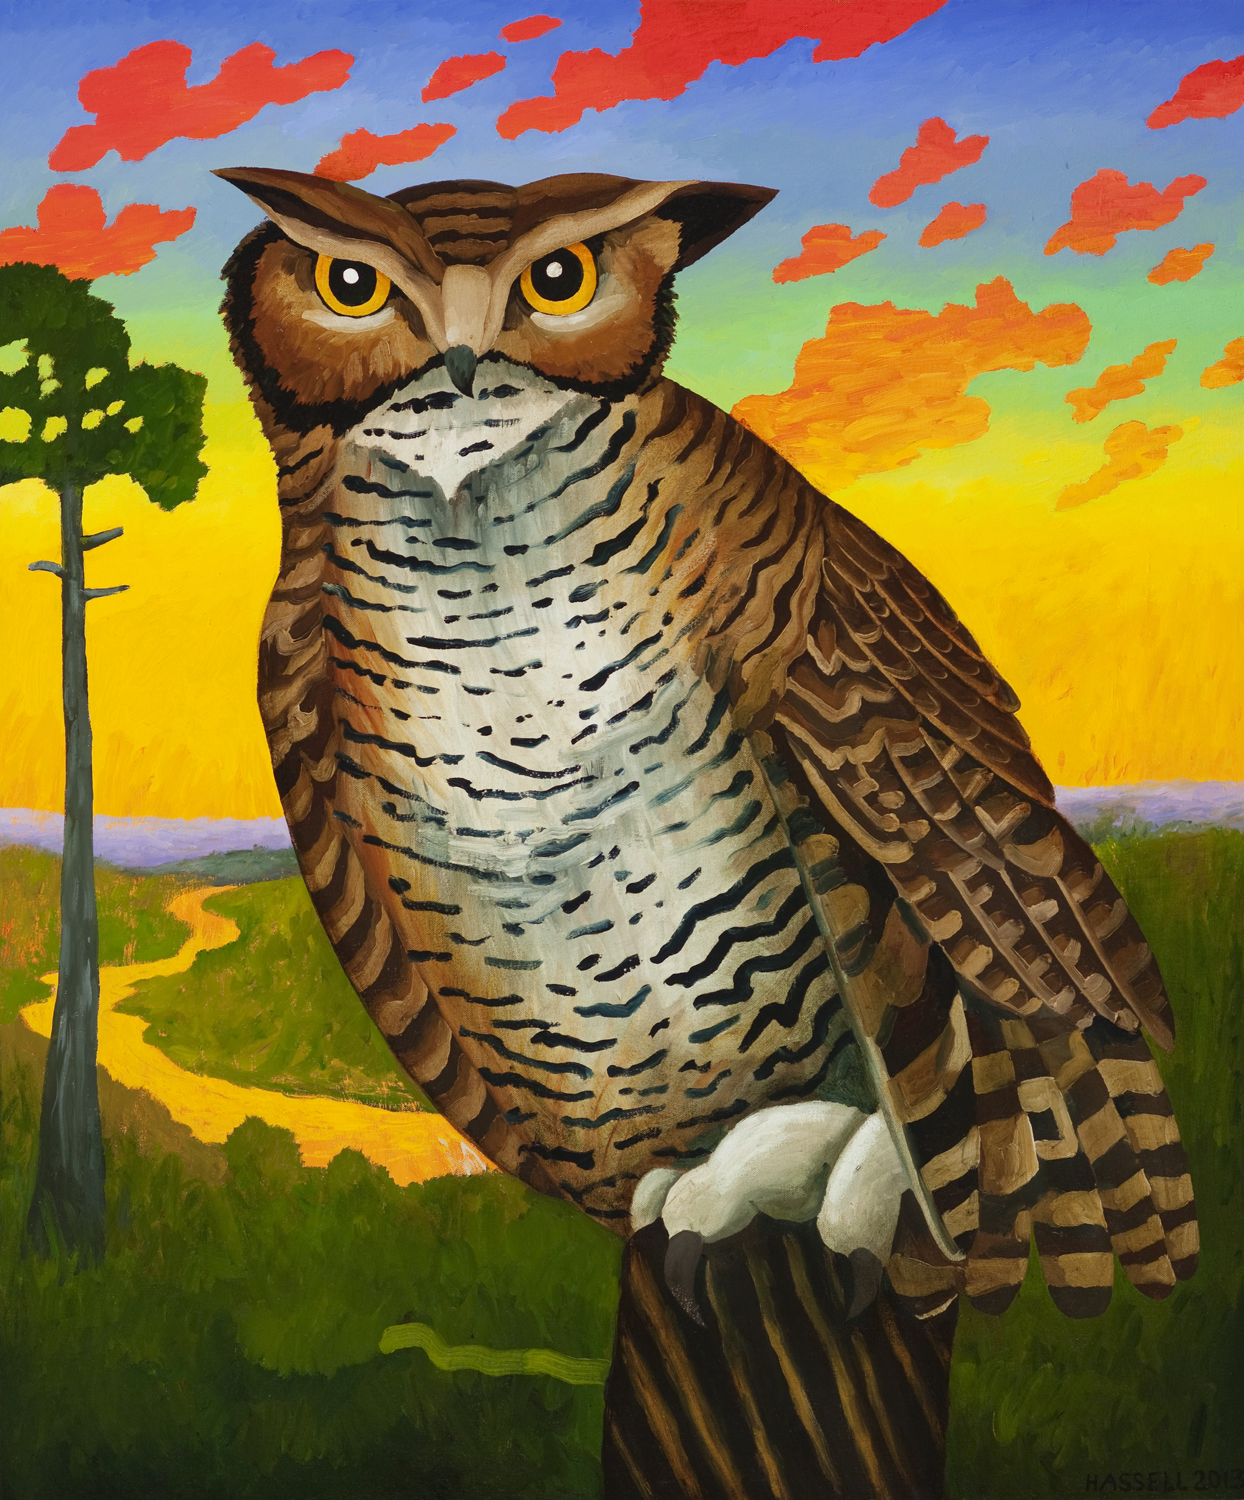 Billy Hassell, Horned Owl with Fiery Sky